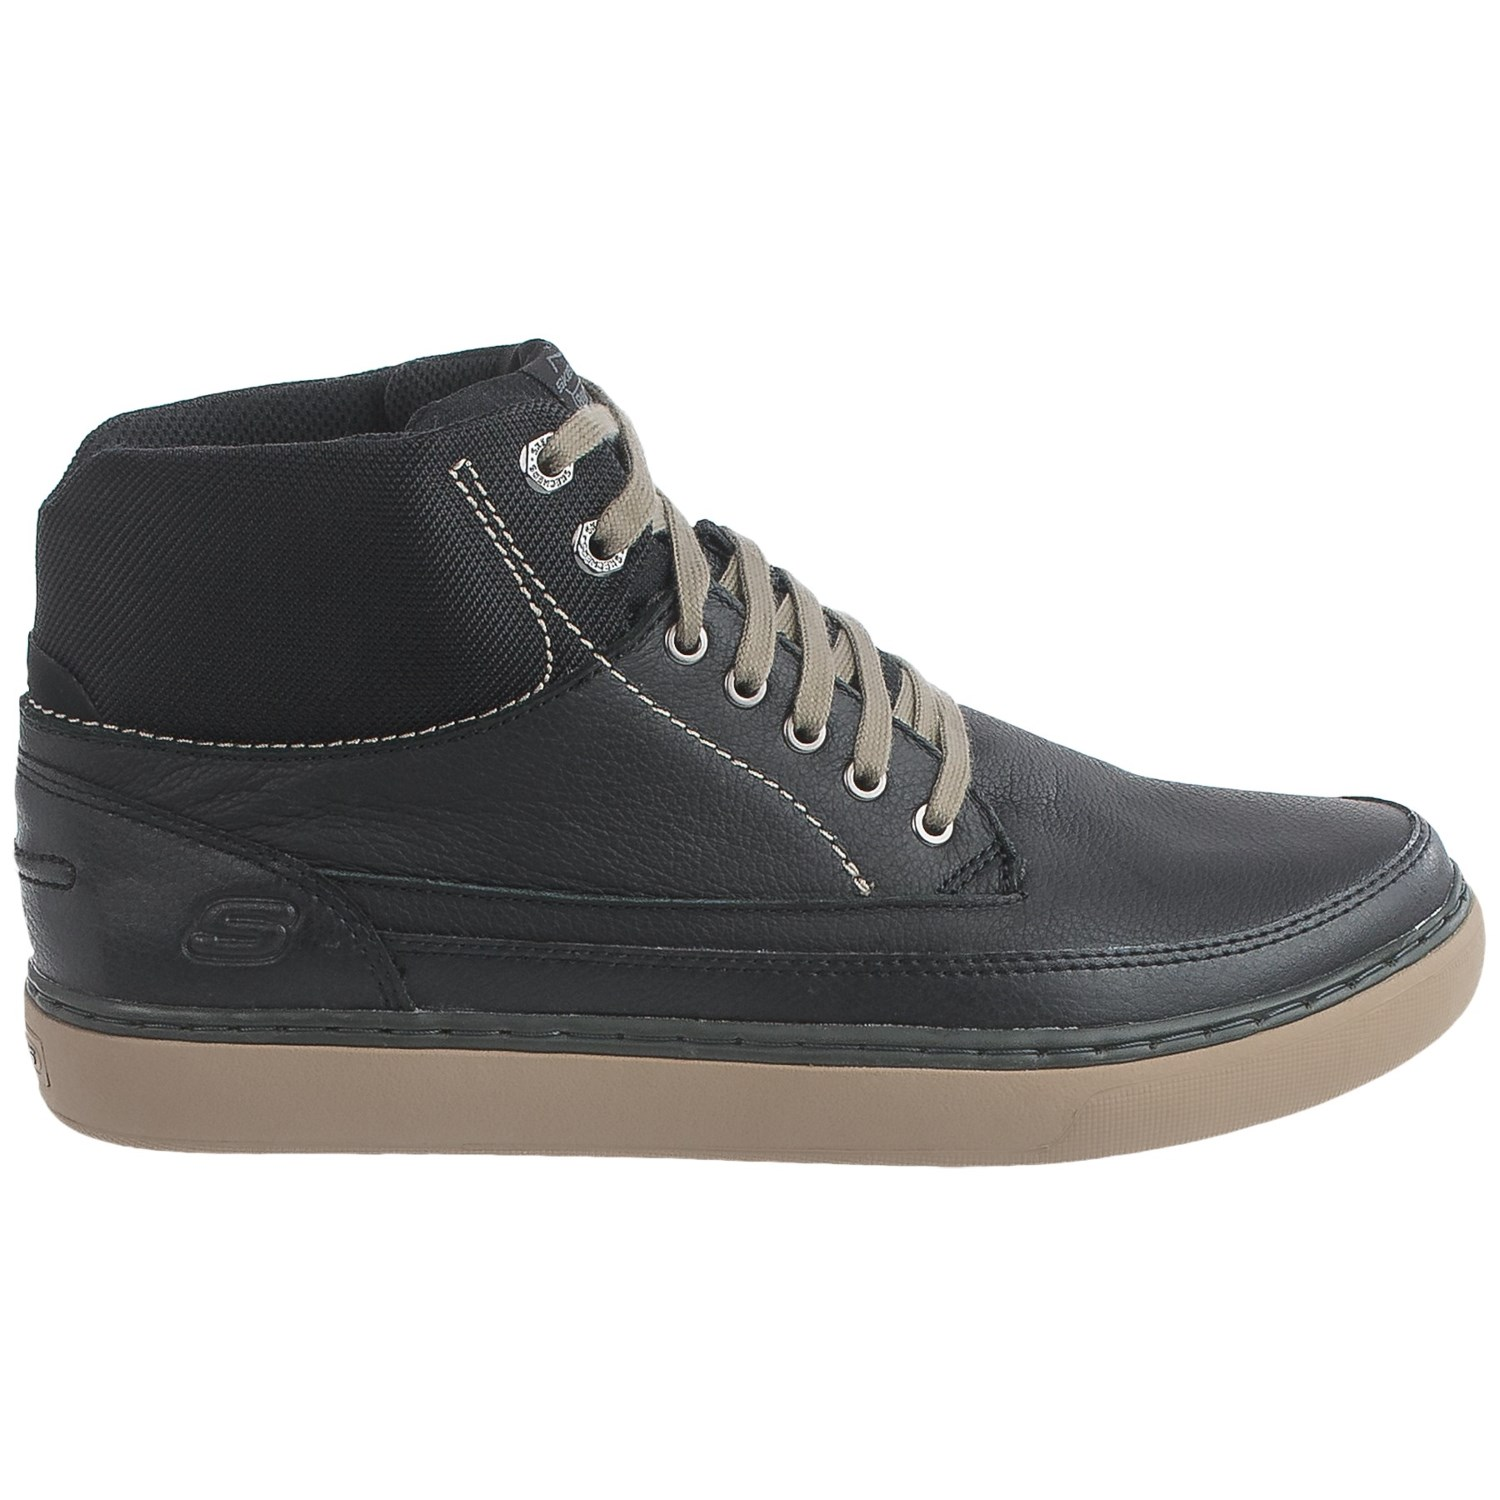 Skechers Relaxed Fit Palen Bower High Top Sneakers For